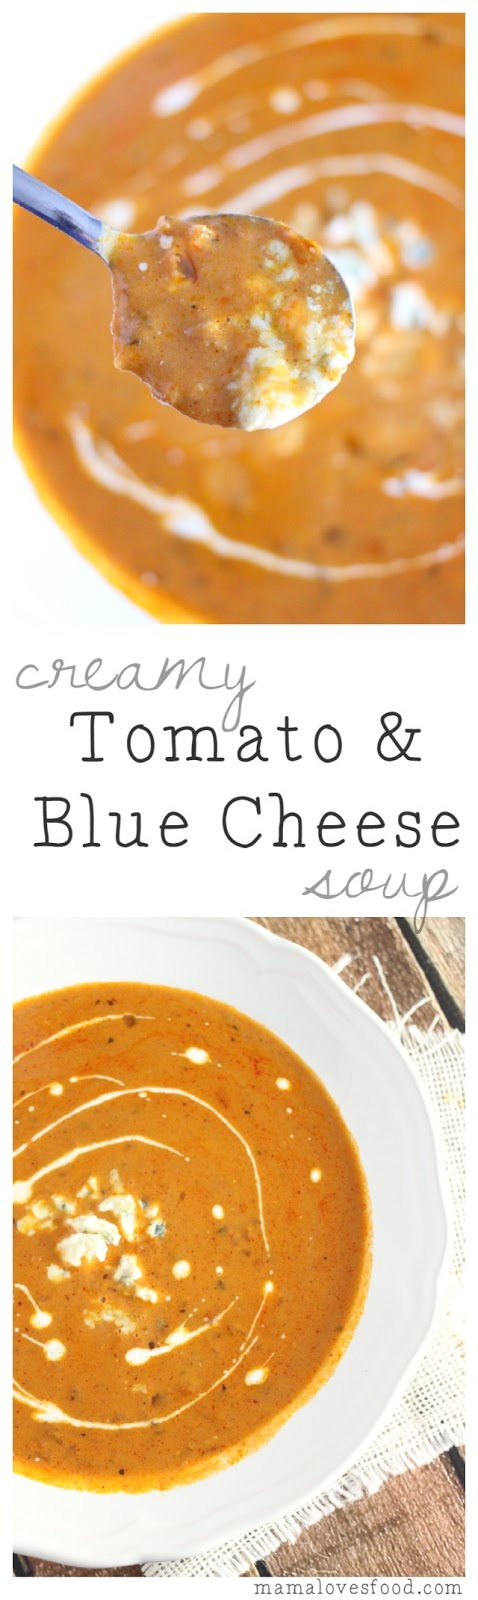 Creamy Tomato and Blue Cheese Soup Recipe